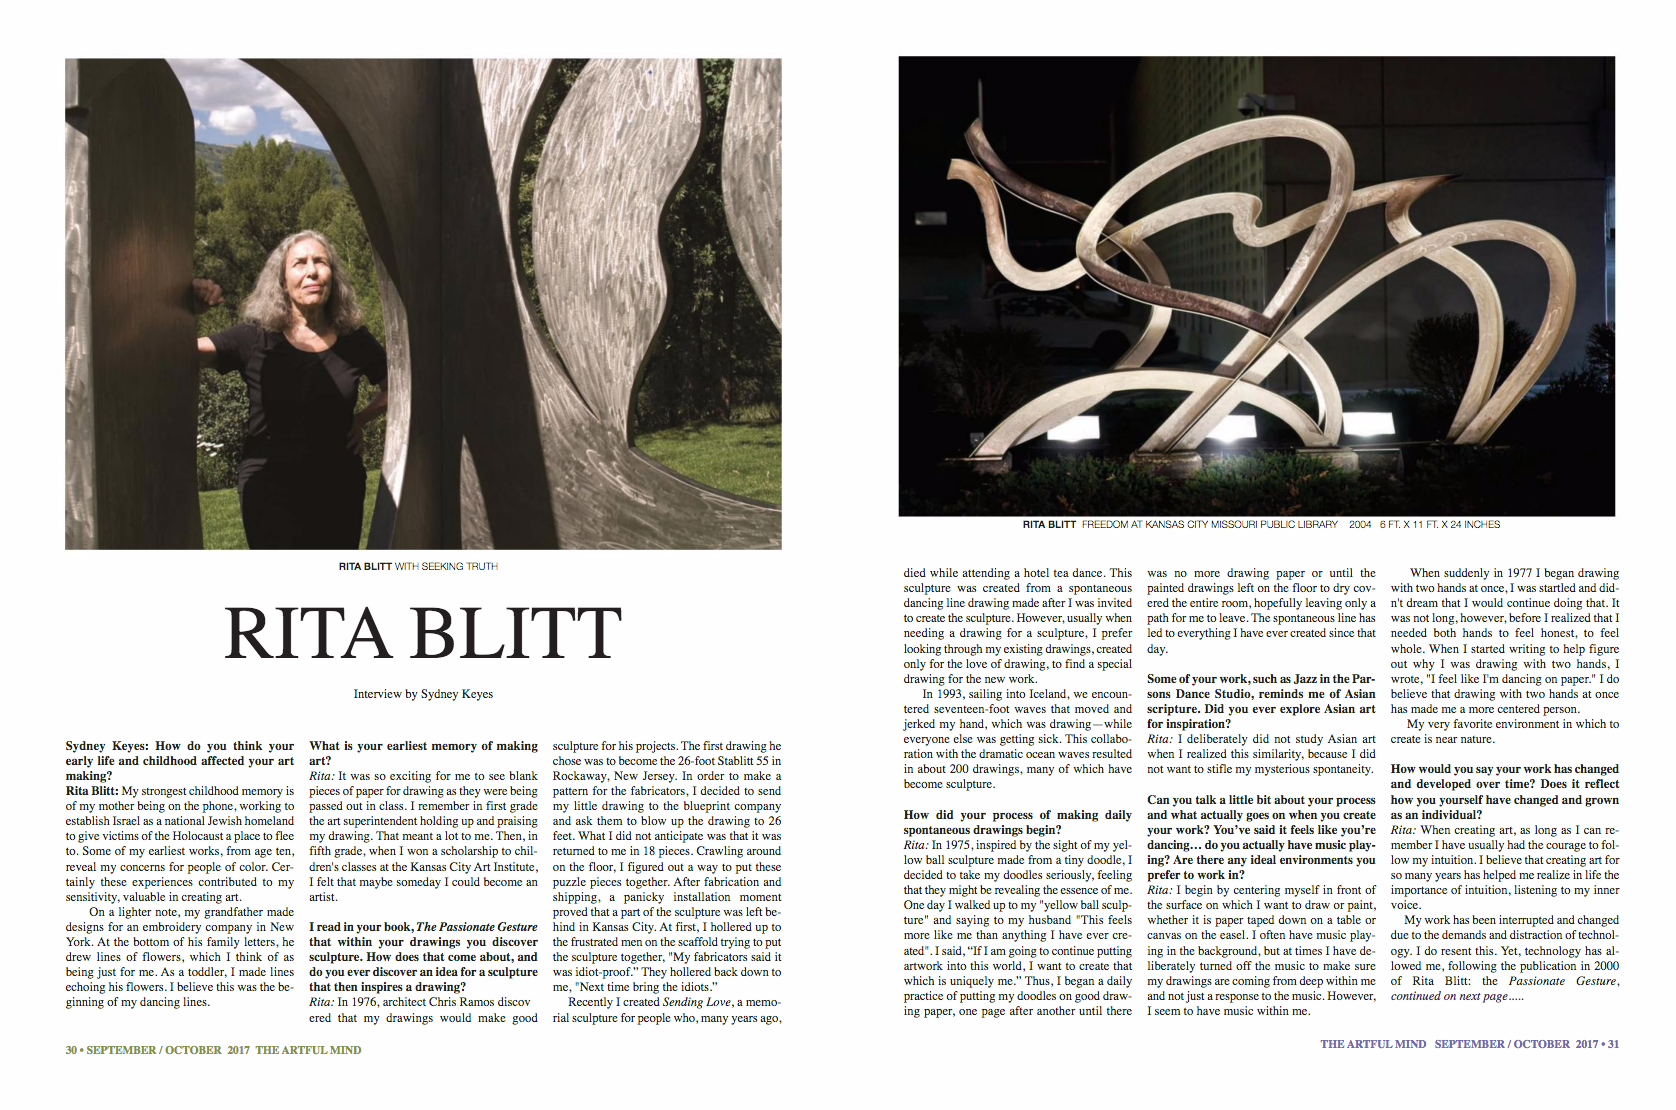 The Artful Mind interviewed Rita Blitt for its Sept/Oct 2017 issue.